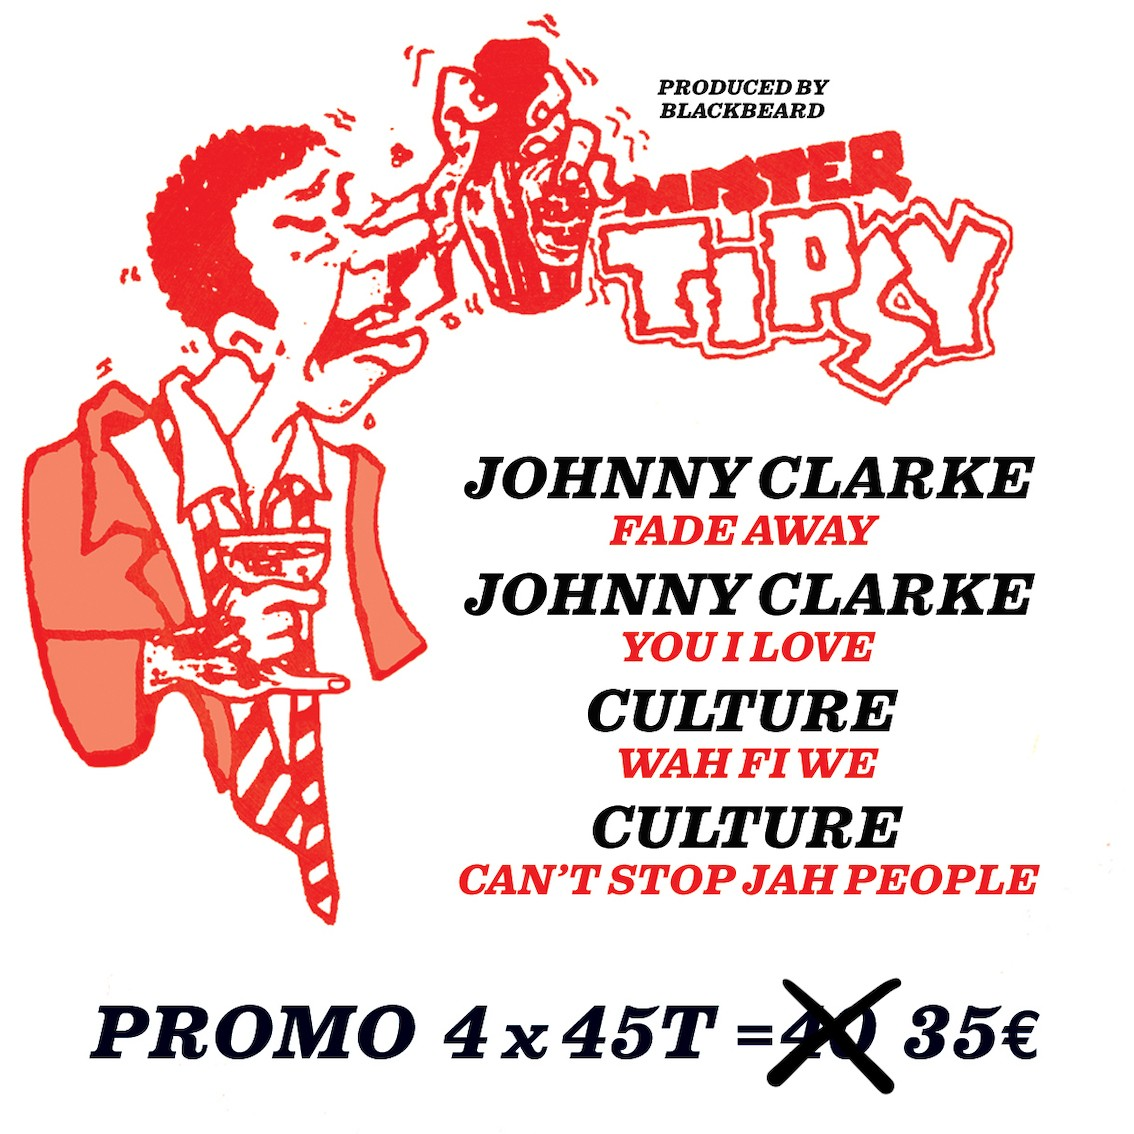 Culture / Johnny Clarke : Wah Fi We / Can'T Stop Jah People / Fade Away / You I Love | Single / 7inch / 45T  |  Oldies / Classics